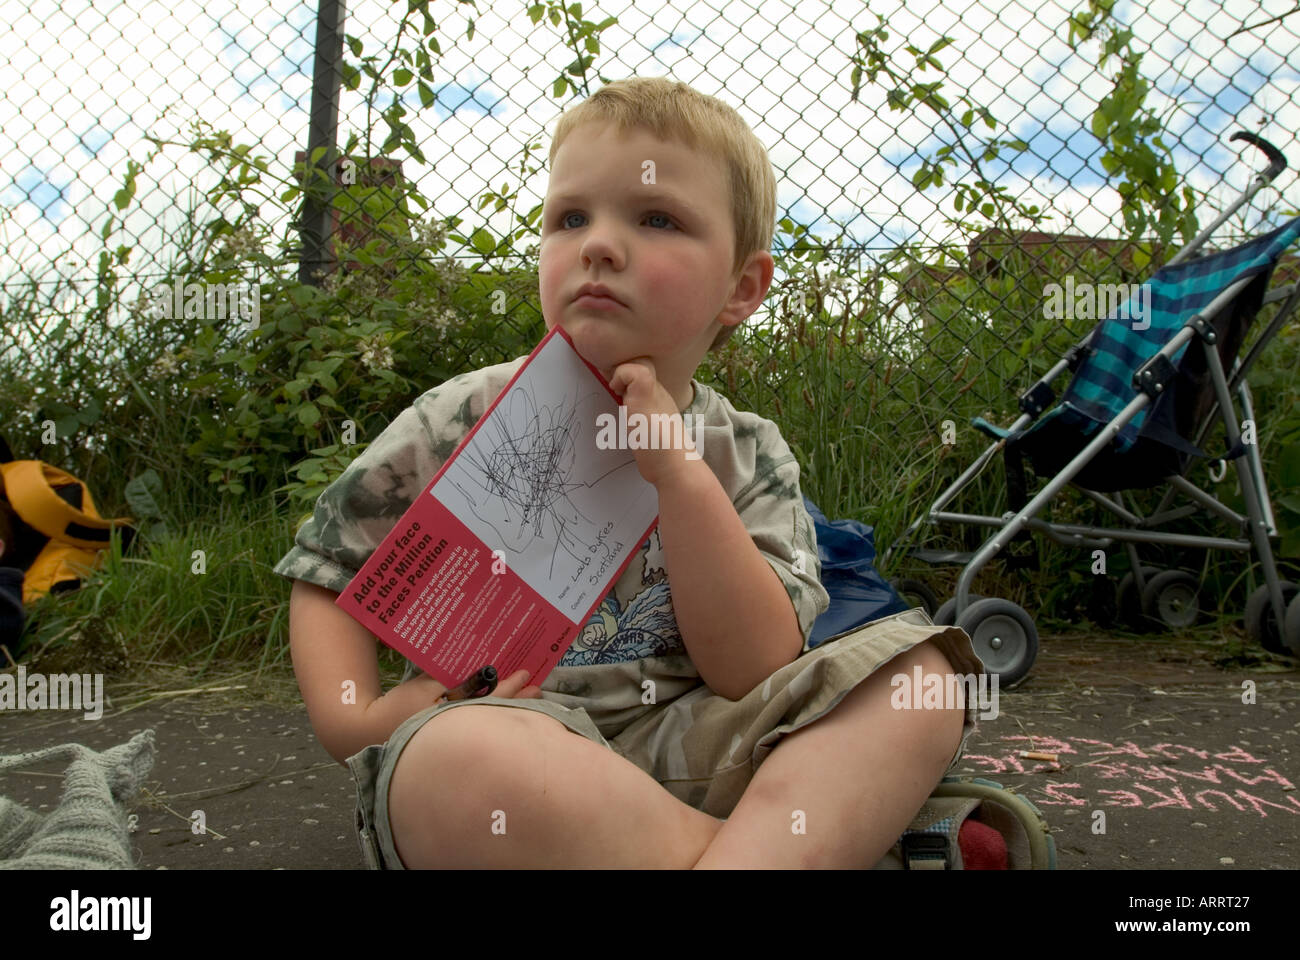 Young protester with petition. G8 rally, Faslane nuclear submarine naval base, Scotland, 2005. - Stock Image